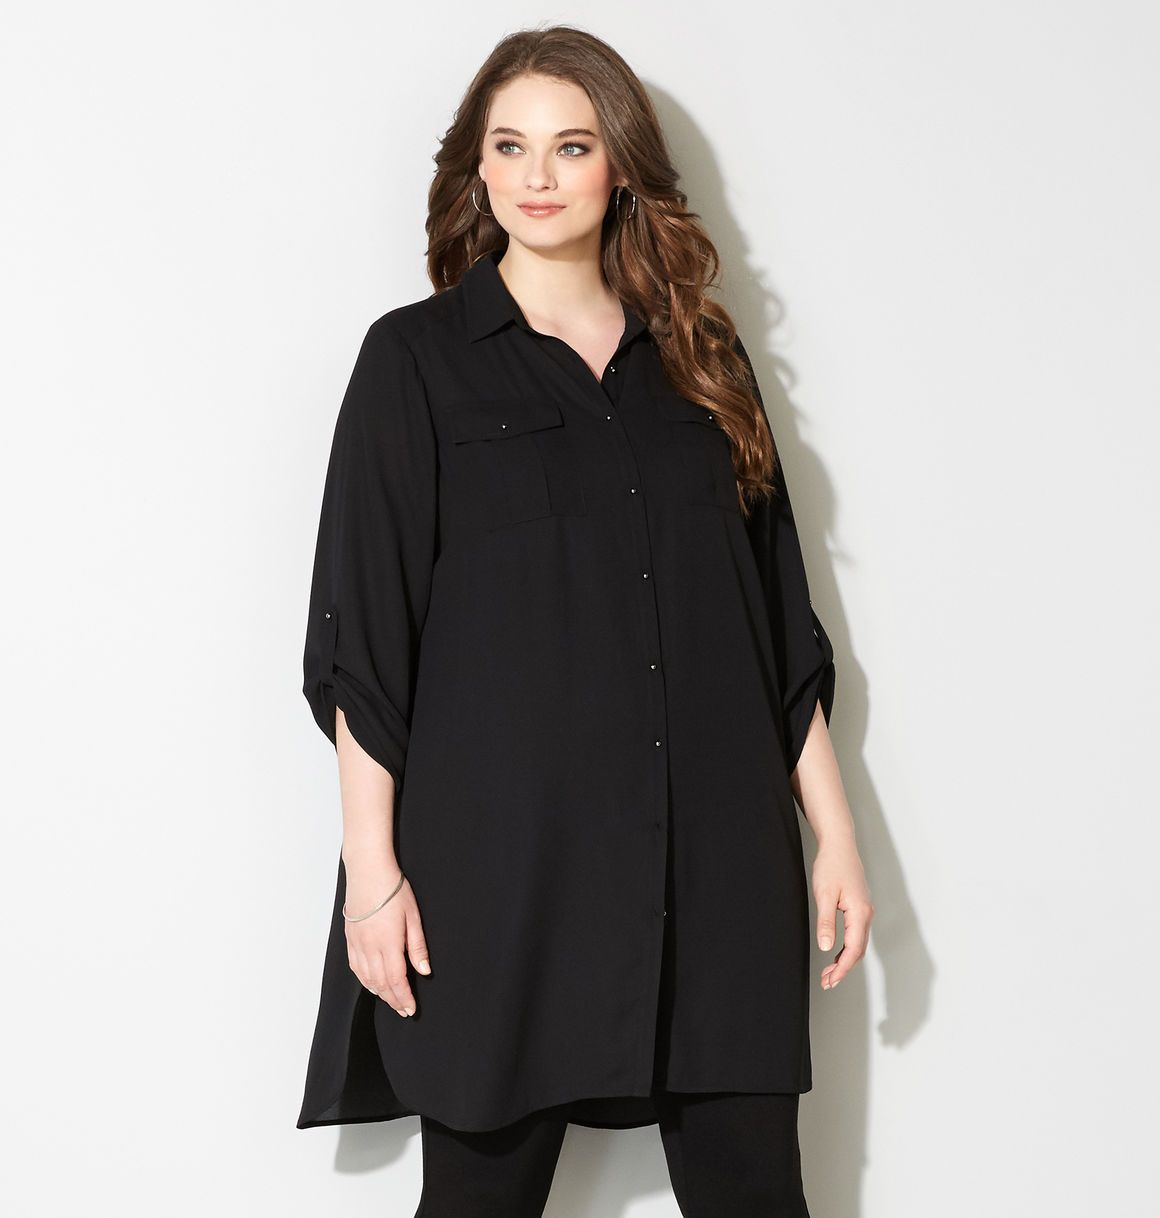 ba9455ac929 Shop long tunics to pair with leggings like the plus size 2 Pocket Tunic  available online at avenue.com. Avenue Store